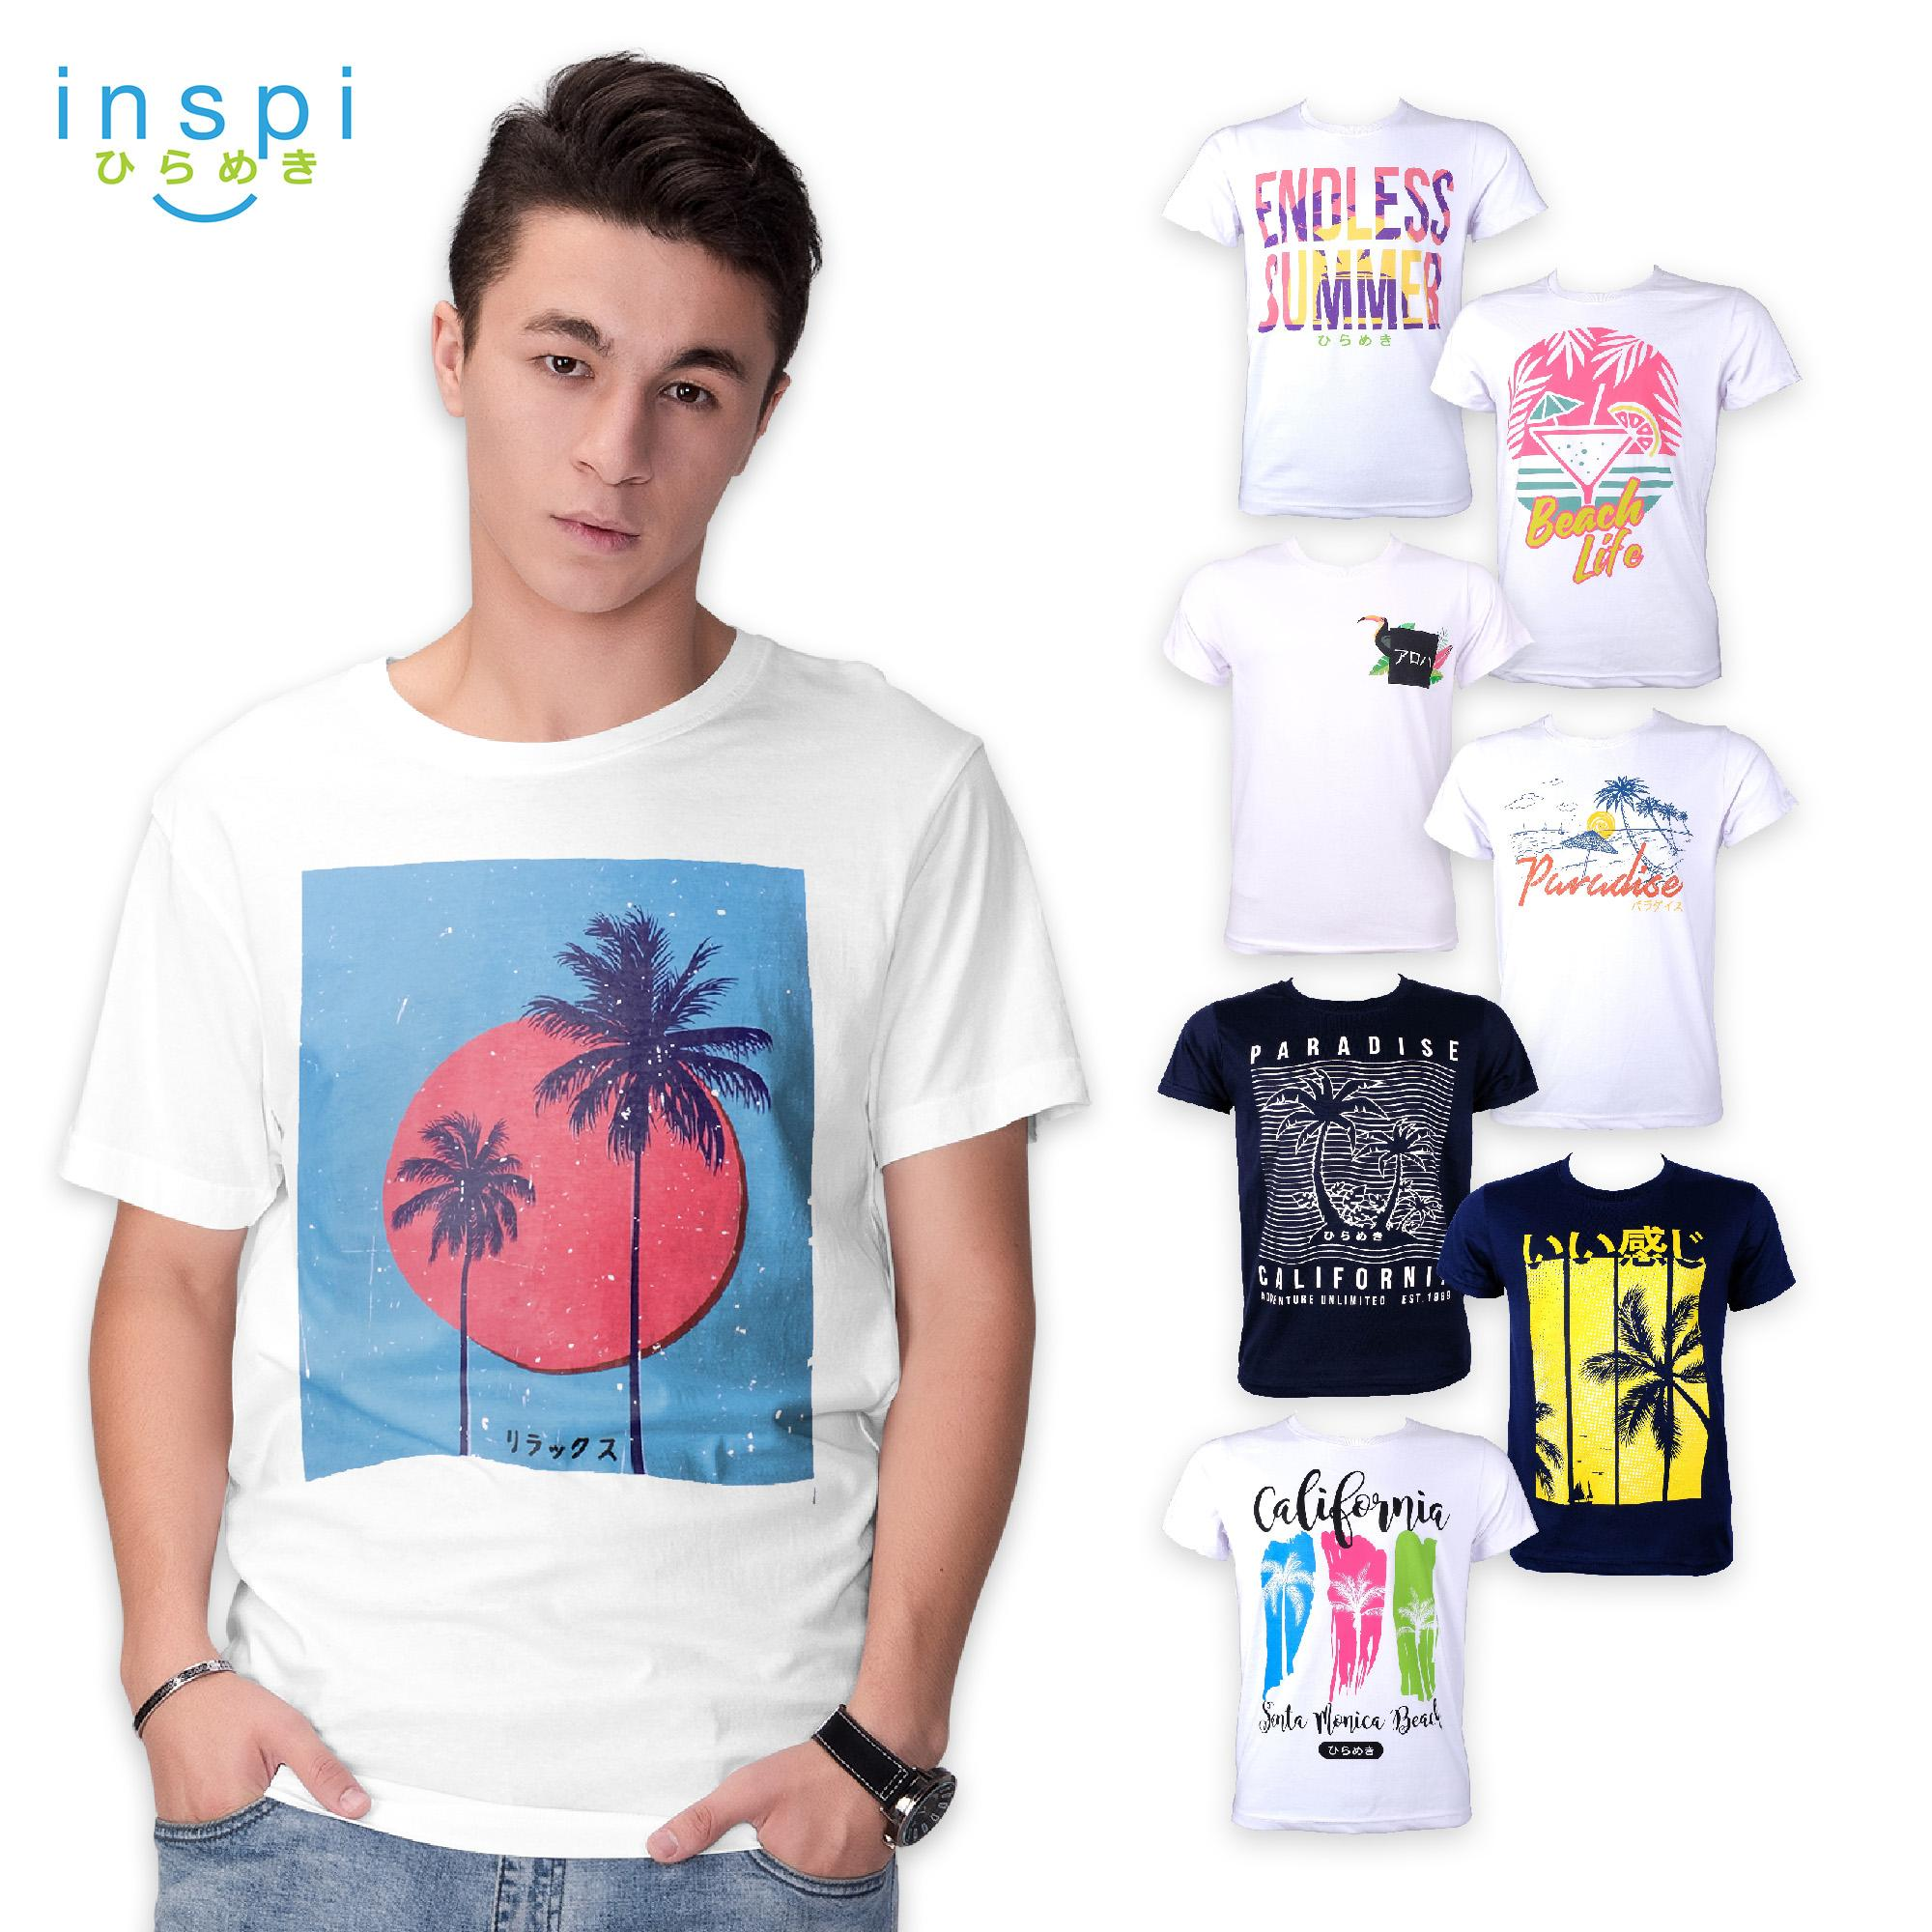 75452e342f50 INSPI Tees Summer Collection tshirt printed graphic tee Mens t shirt shirts  for men tshirts sale